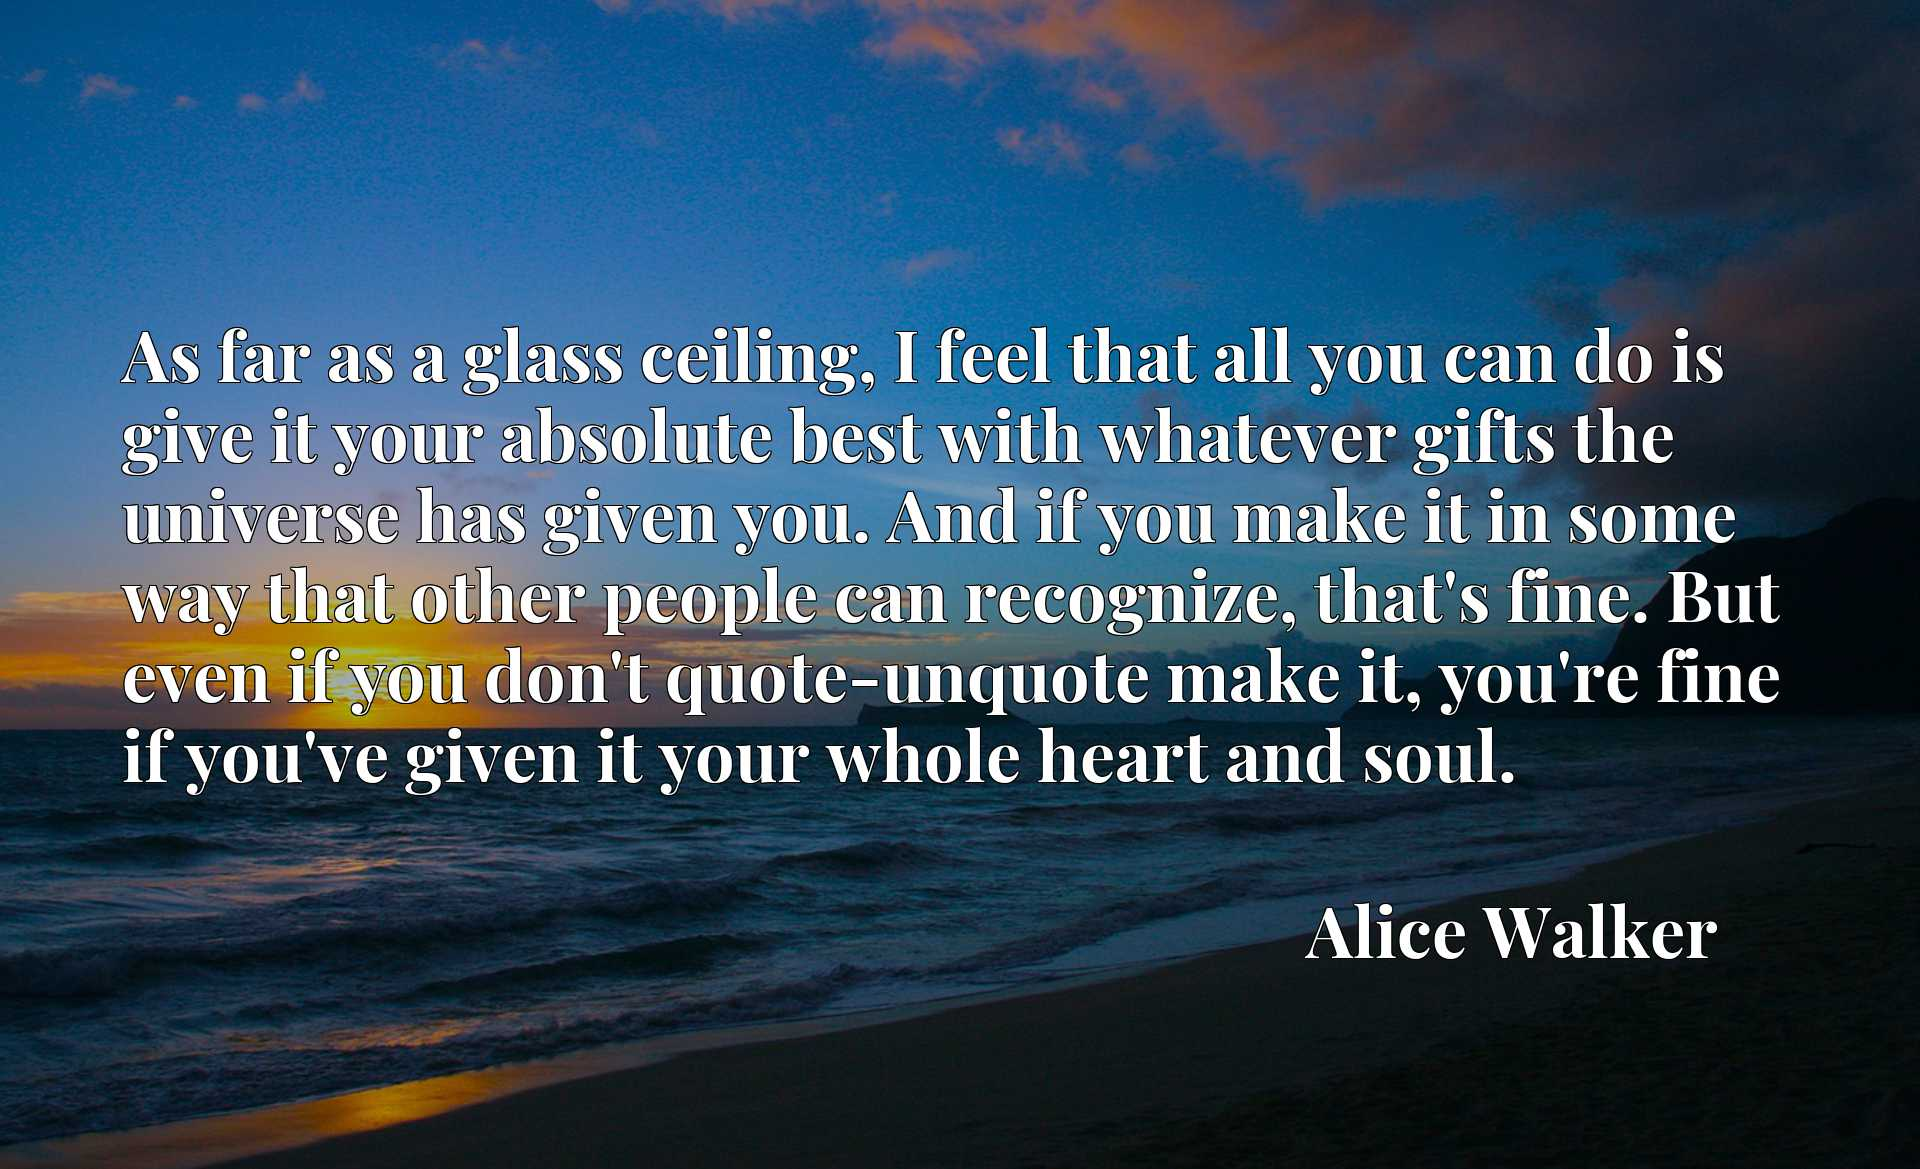 As far as a glass ceiling, I feel that all you can do is give it your absolute best with whatever gifts the universe has given you. And if you make it in some way that other people can recognize, that's fine. But even if you don't quote-unquote make it, you're fine if you've given it your whole heart and soul.